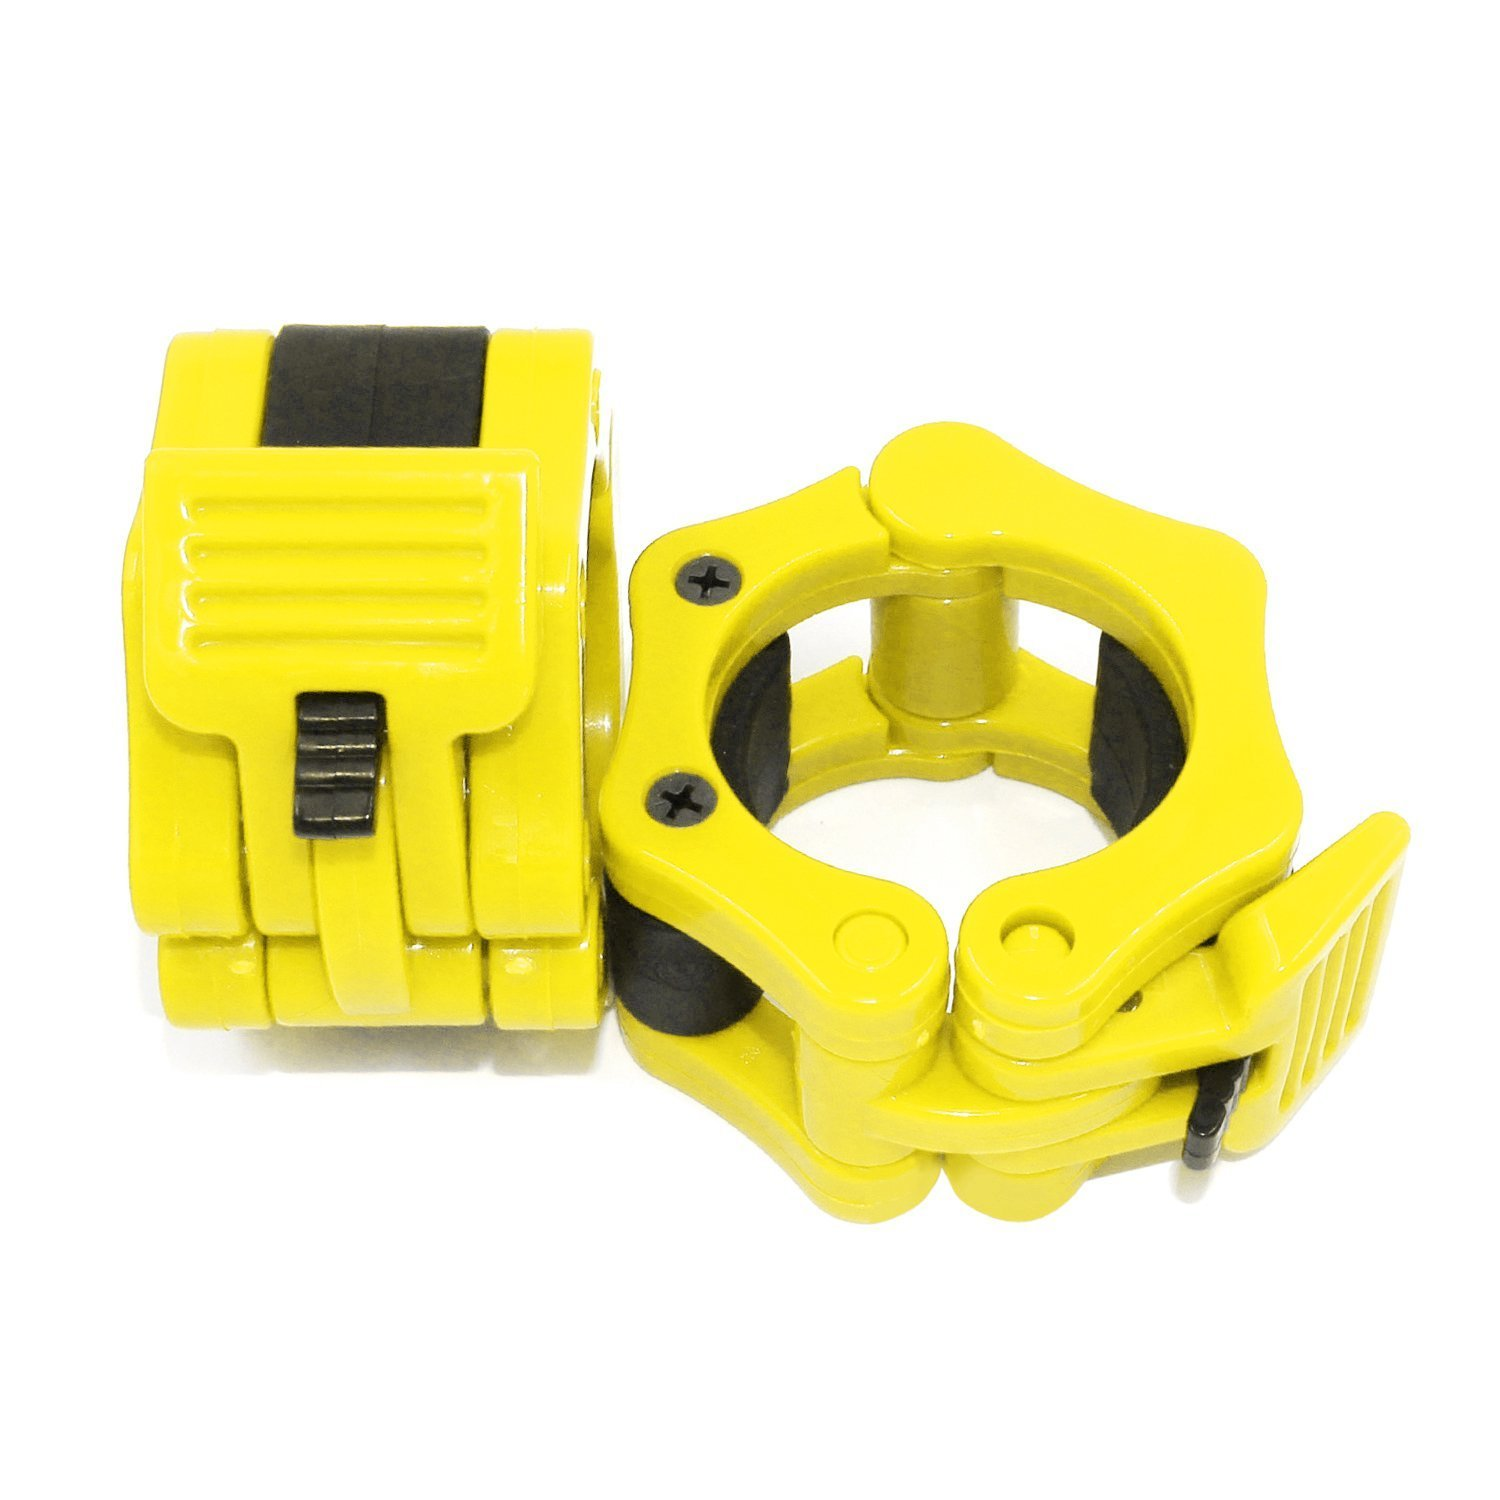 2PCS Olympic Dumbbell Barbell Bar Lock Spinlock Collar Weight Clamps Gym Fitness